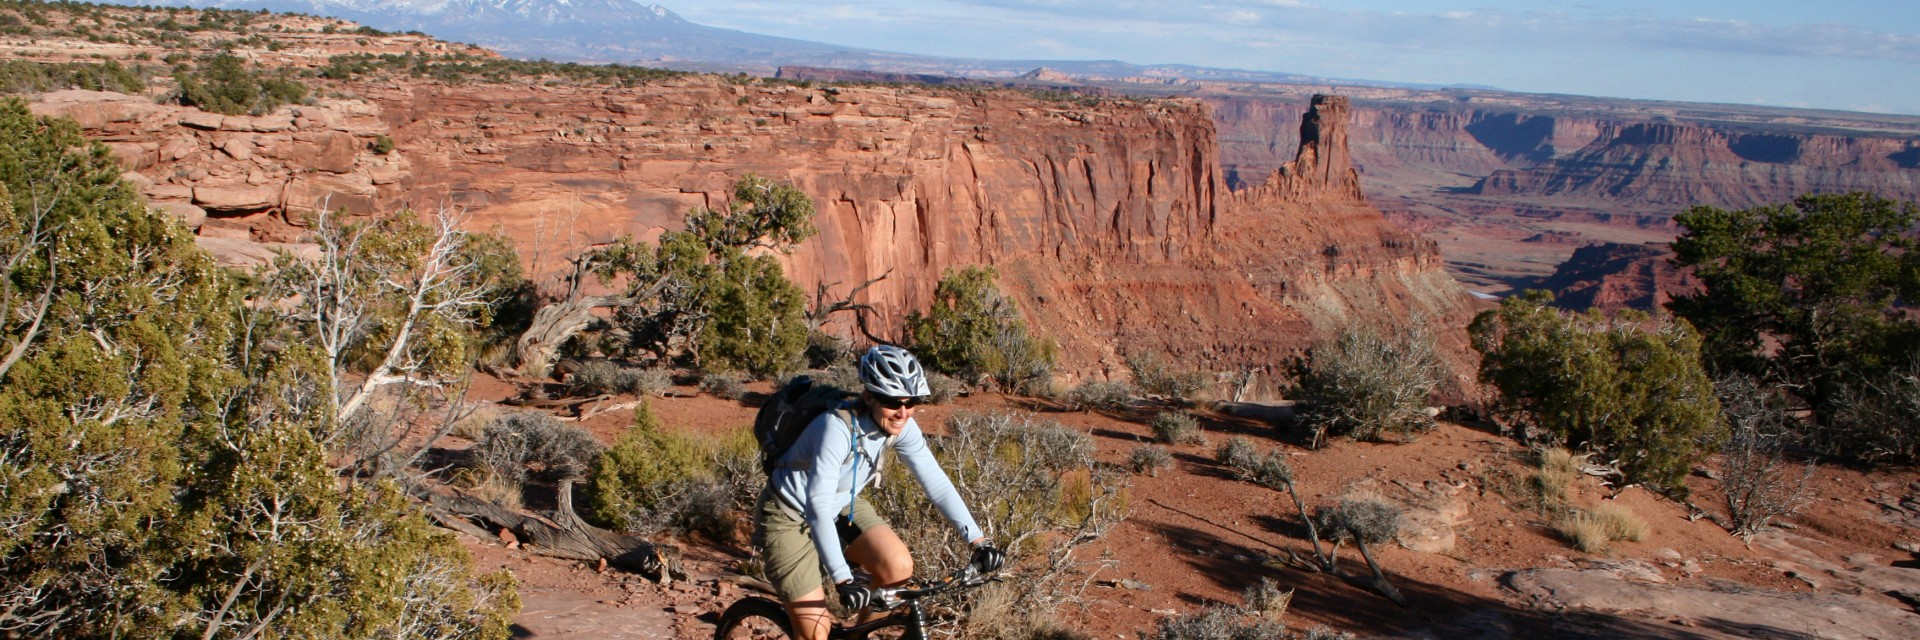 Dead Horse Point State Park - Intredpid Trail, is one of the most popular half and full day tours in Moab, UT